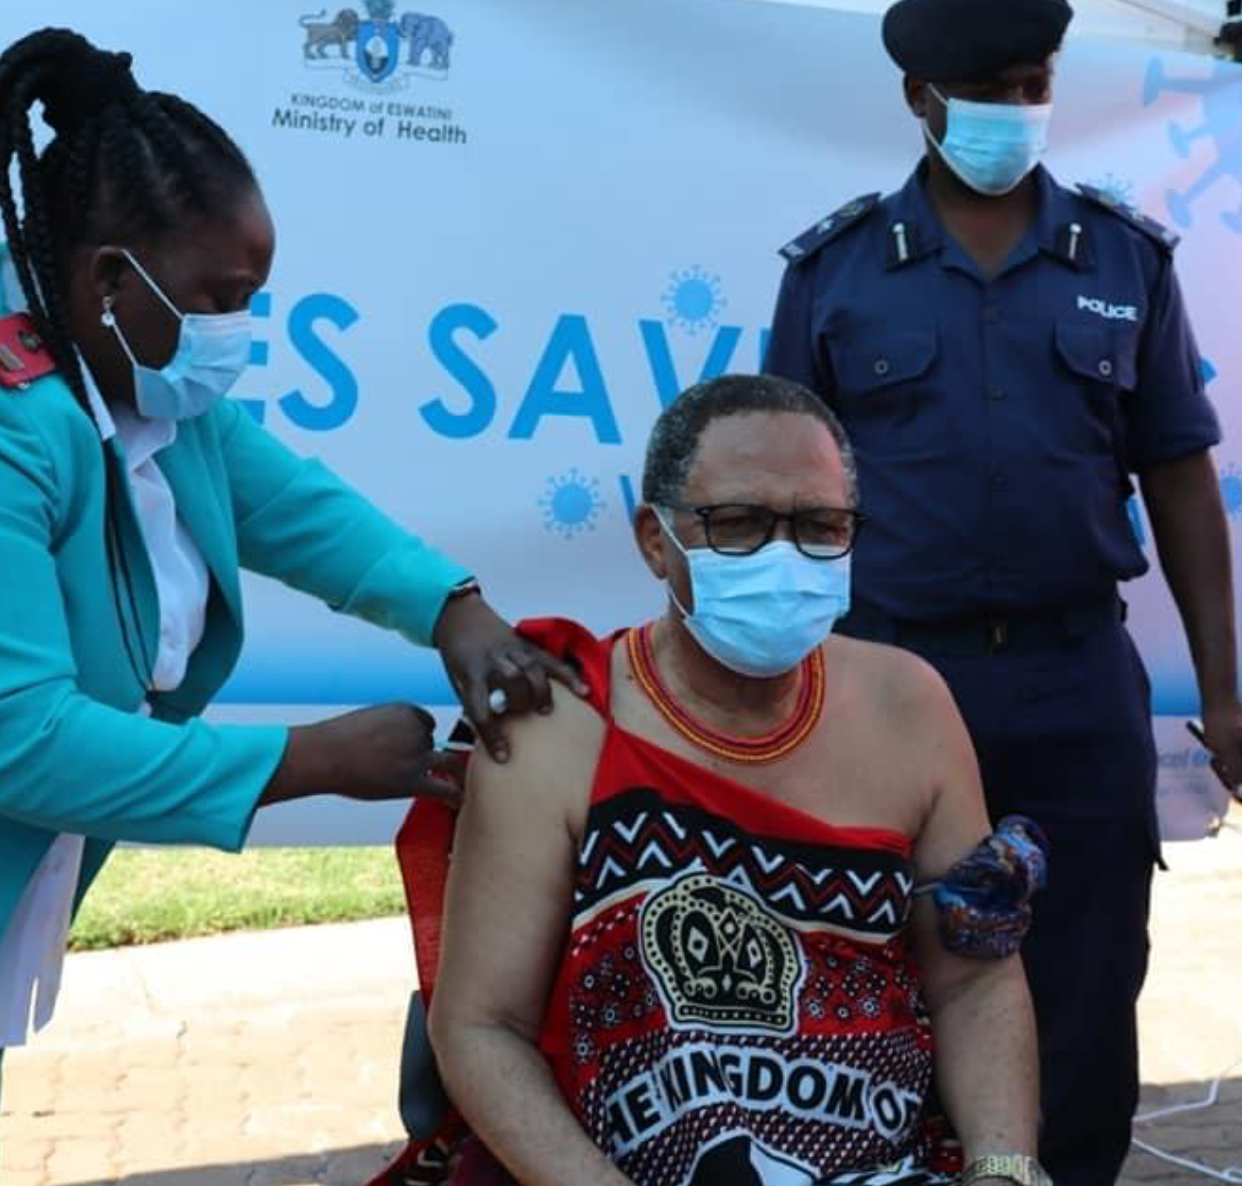 Acting Prime Minister officially launch vaccination programme, urges Swazis to accept controversial AstraZeneca vaccines